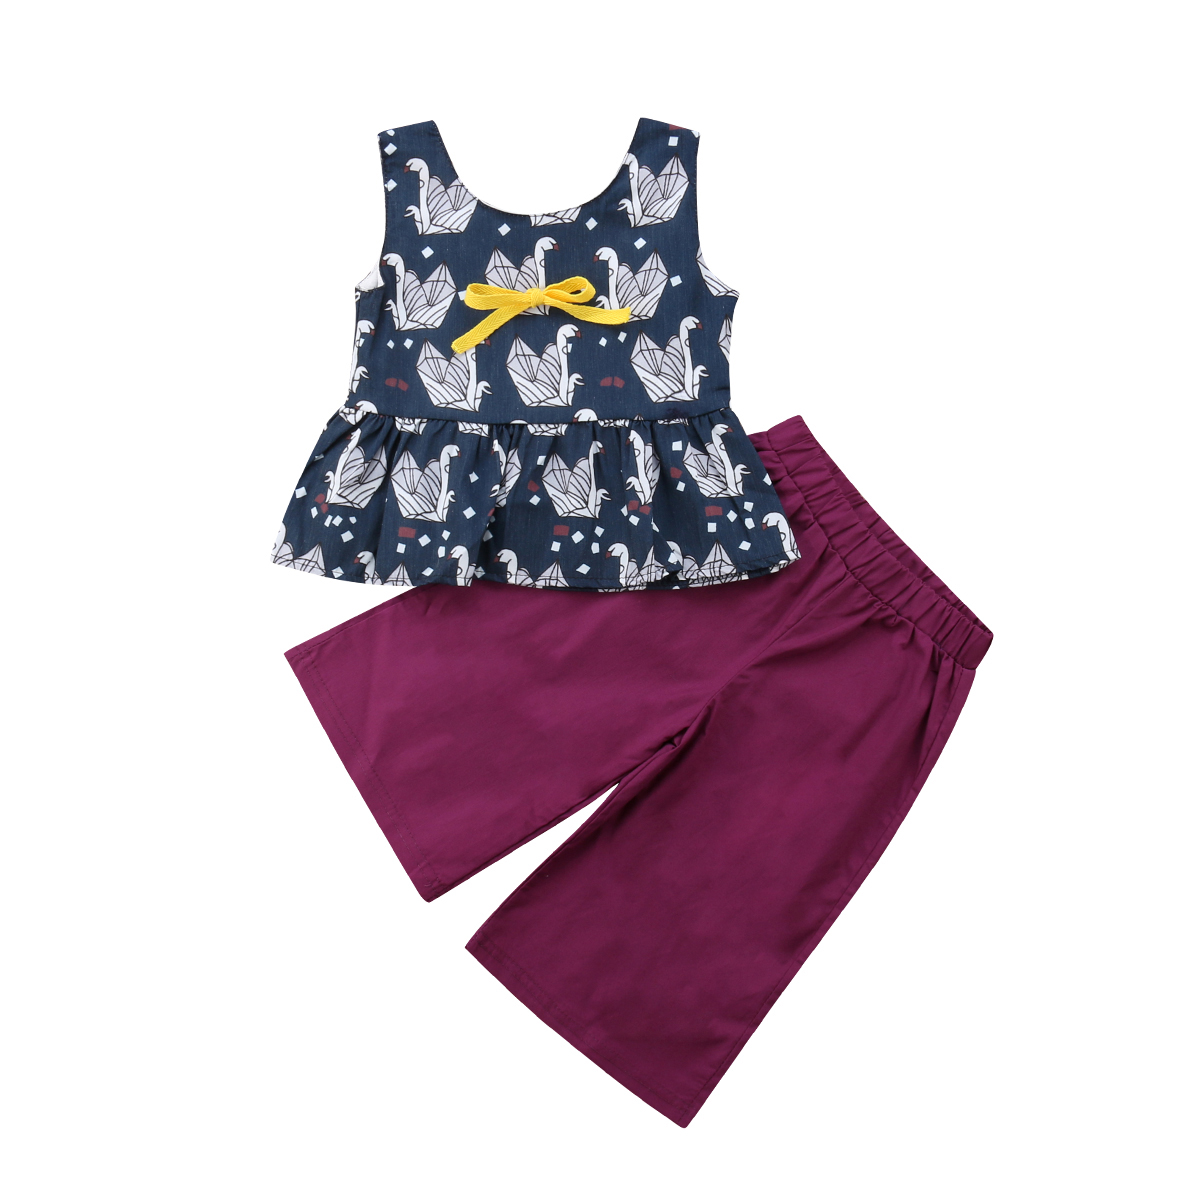 2PCS Toddler Baby Girls Vest Tops Pants Kids Summer Clothes Outfits 1-5T